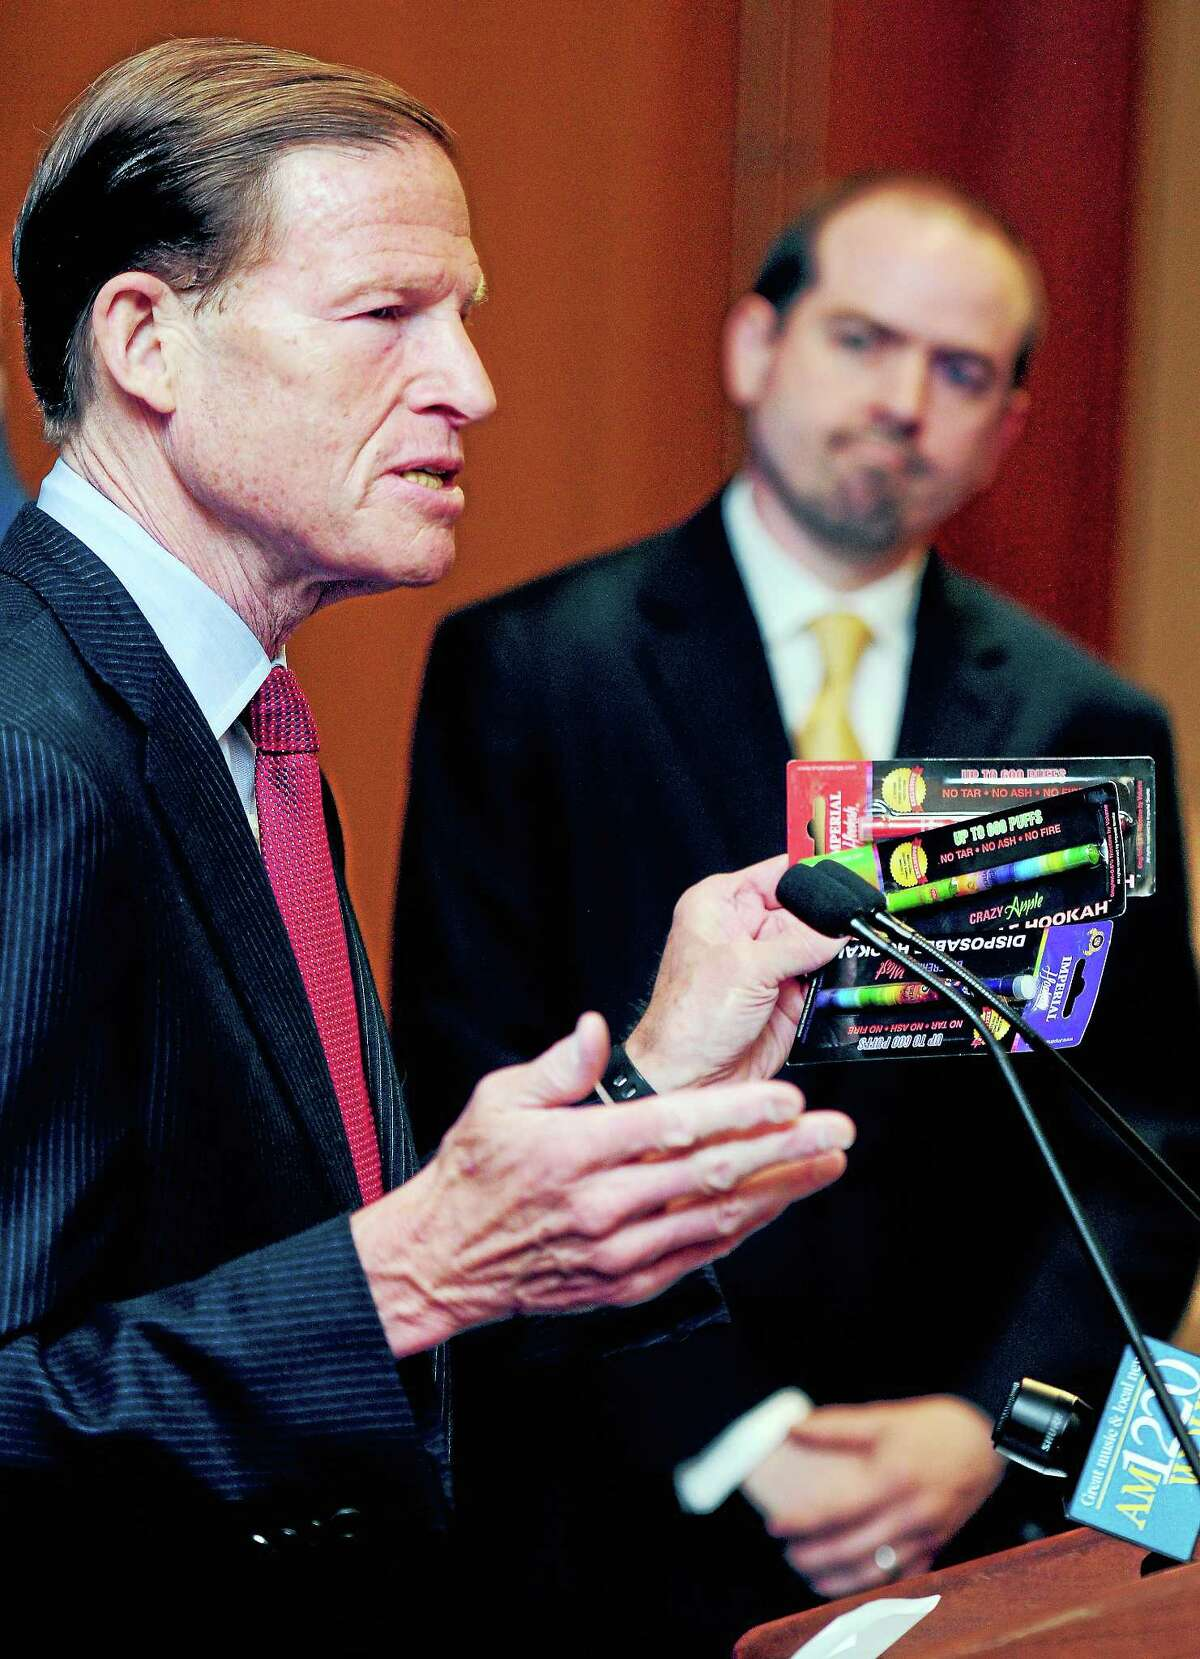 Senator Richard Blumenthal calls for further action restricting the sale and usage of e-cigarettes during a press conference at Smilow Cancer Hospital at Yale-New Haven on 4/28/2014. In the background is Dr. Benjamin Toll, Program Director, Smoking Cessation Service at Smilow Cancer Hospital at Yale-New Haven.